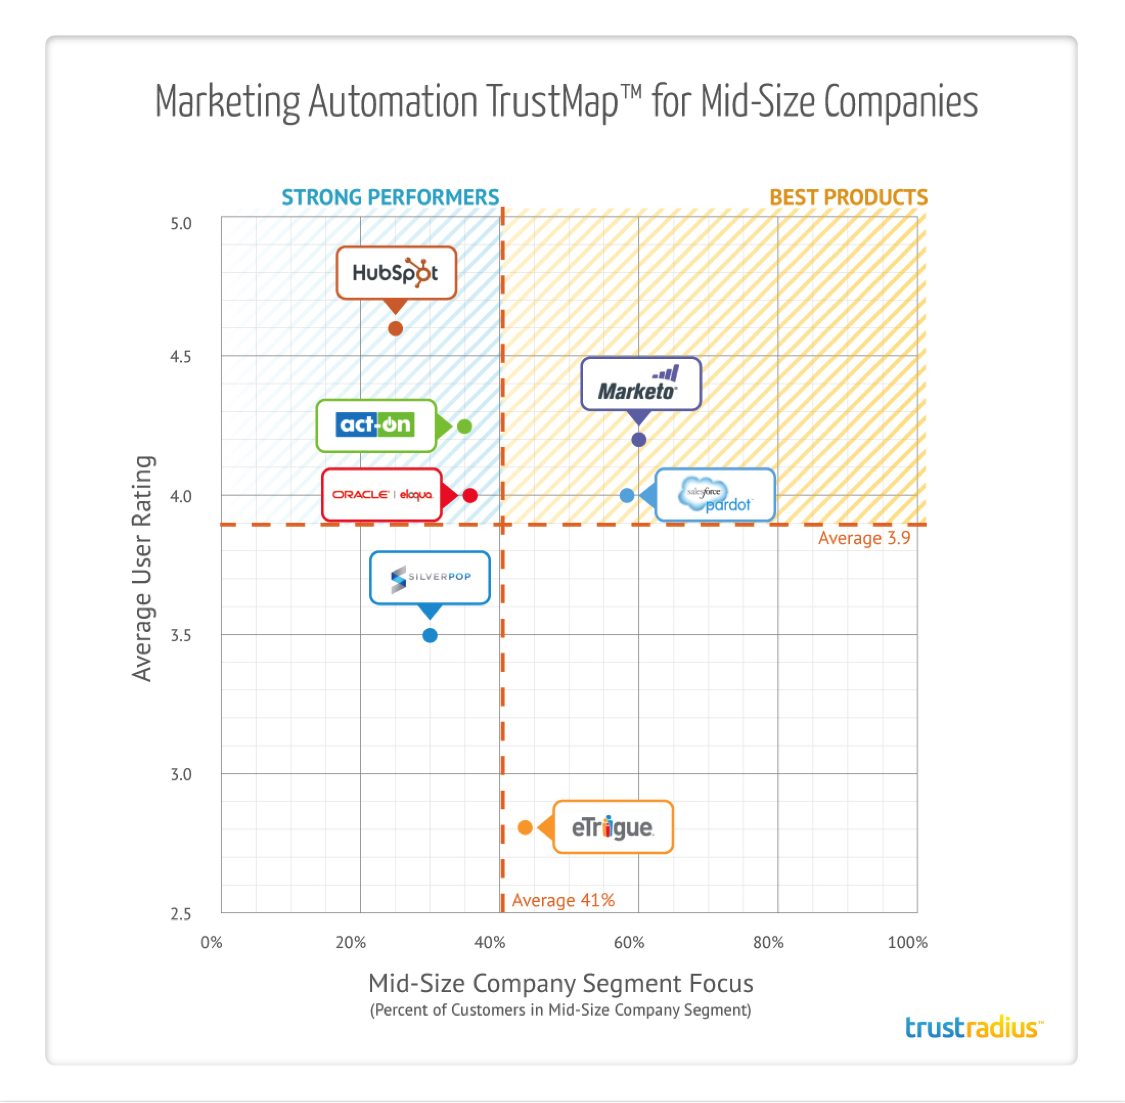 Marketing Automation TrustMap for Mid-Size Companies